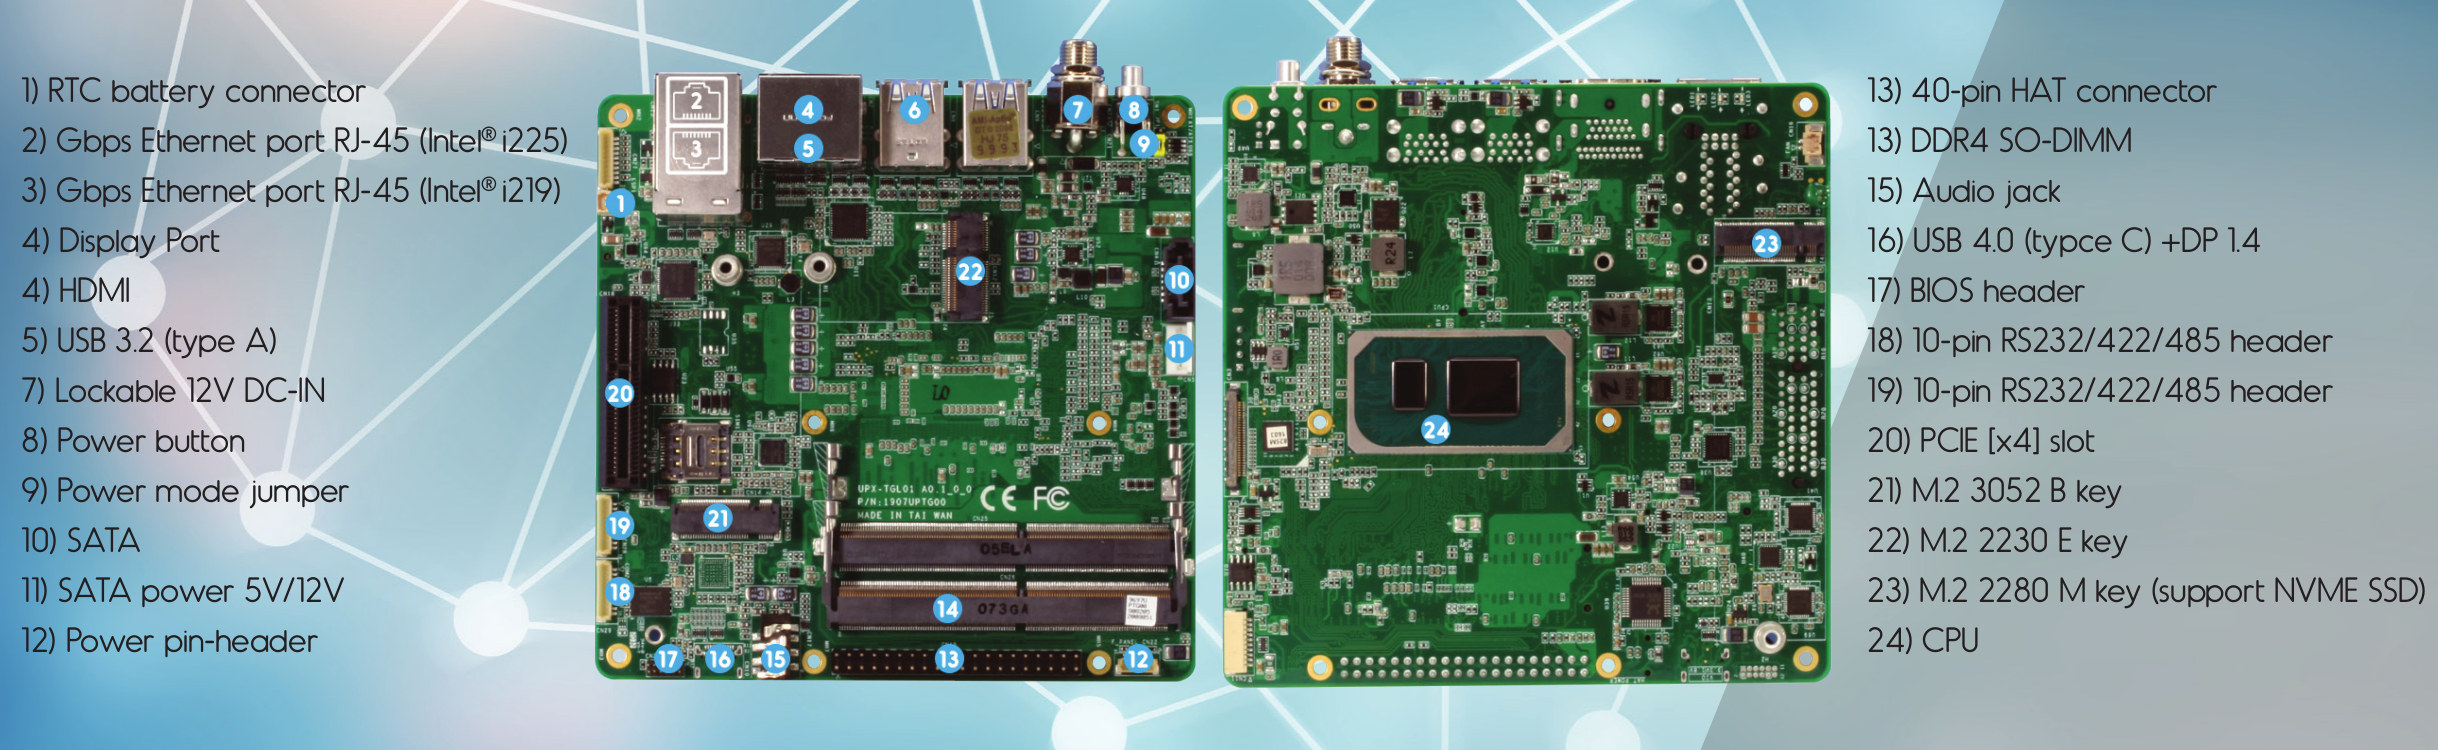 Tiger Lake Embedded SBC specifications